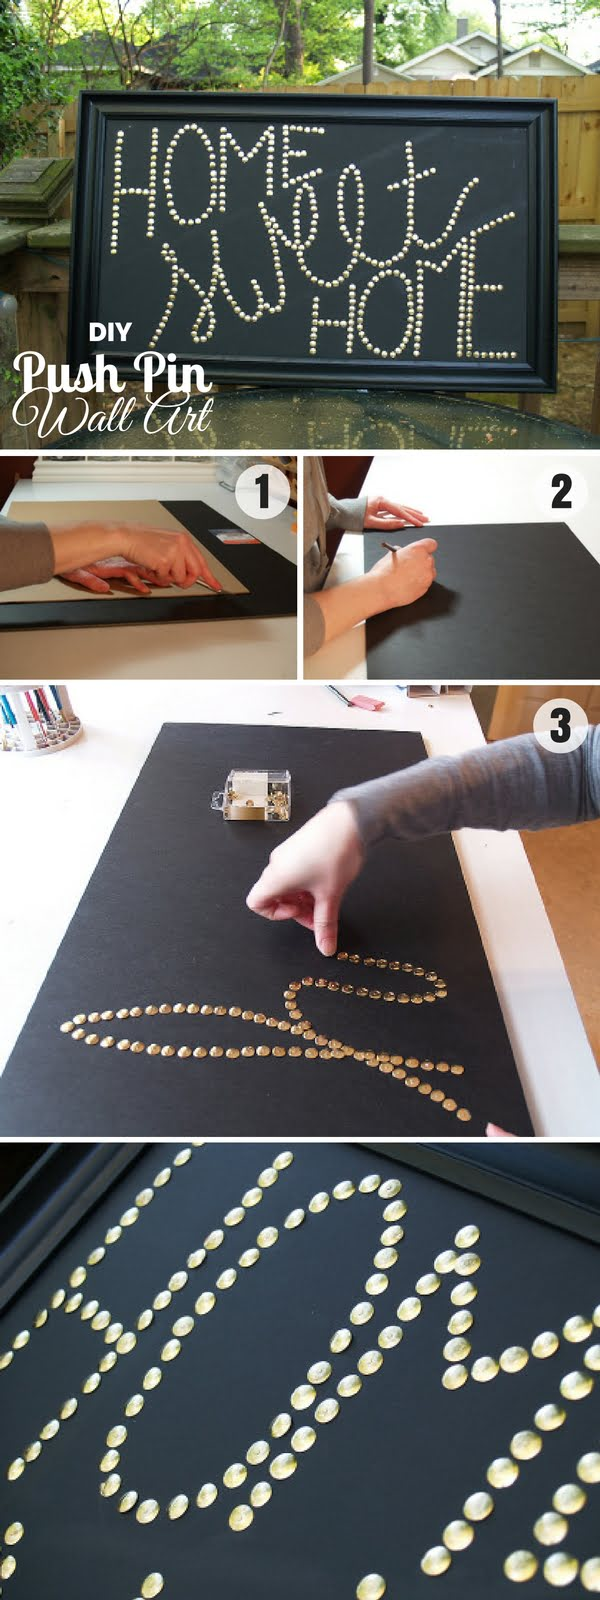 16 Beautiful DIY Bedroom Decor Ideas That Will Inspire You - Check out how to make easy DIY Push Pin Wall Art for bedroom decor